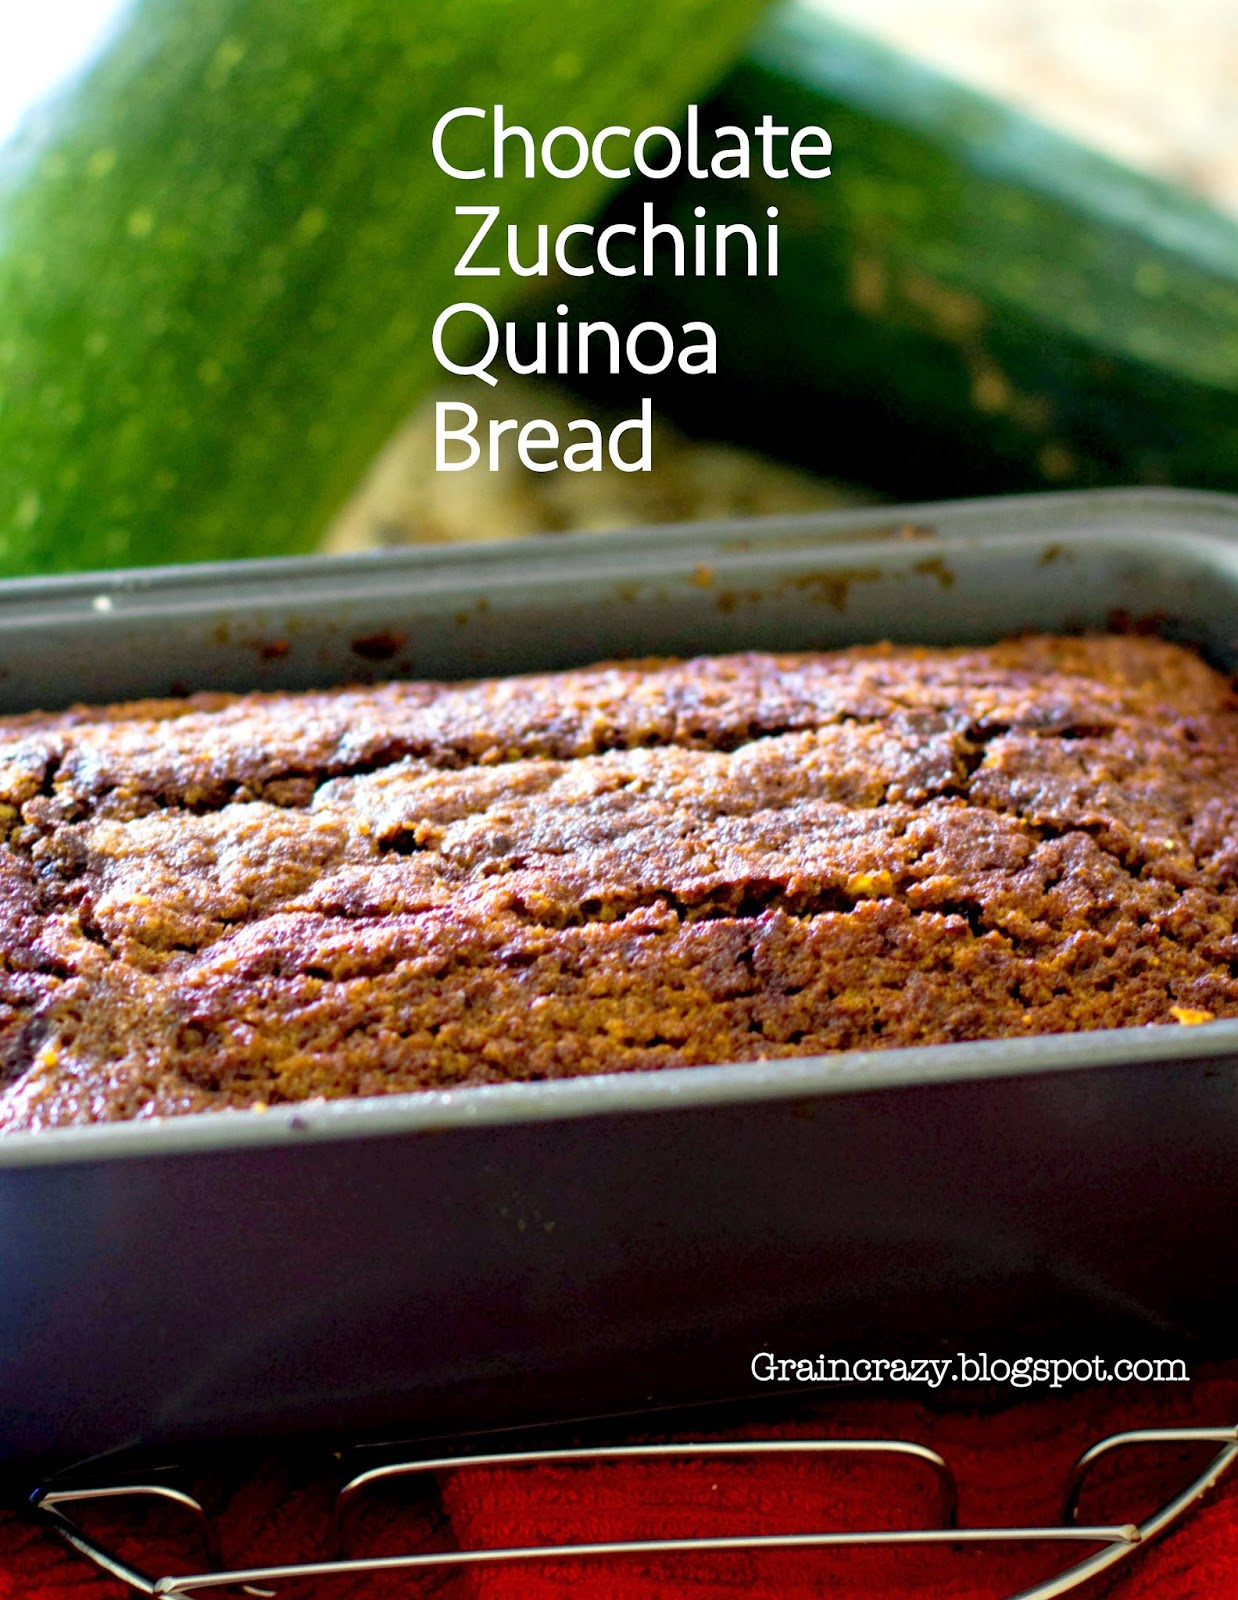 Grain Crazy: Chocolate Zucchini Quinoa Bread (Gluten Free)